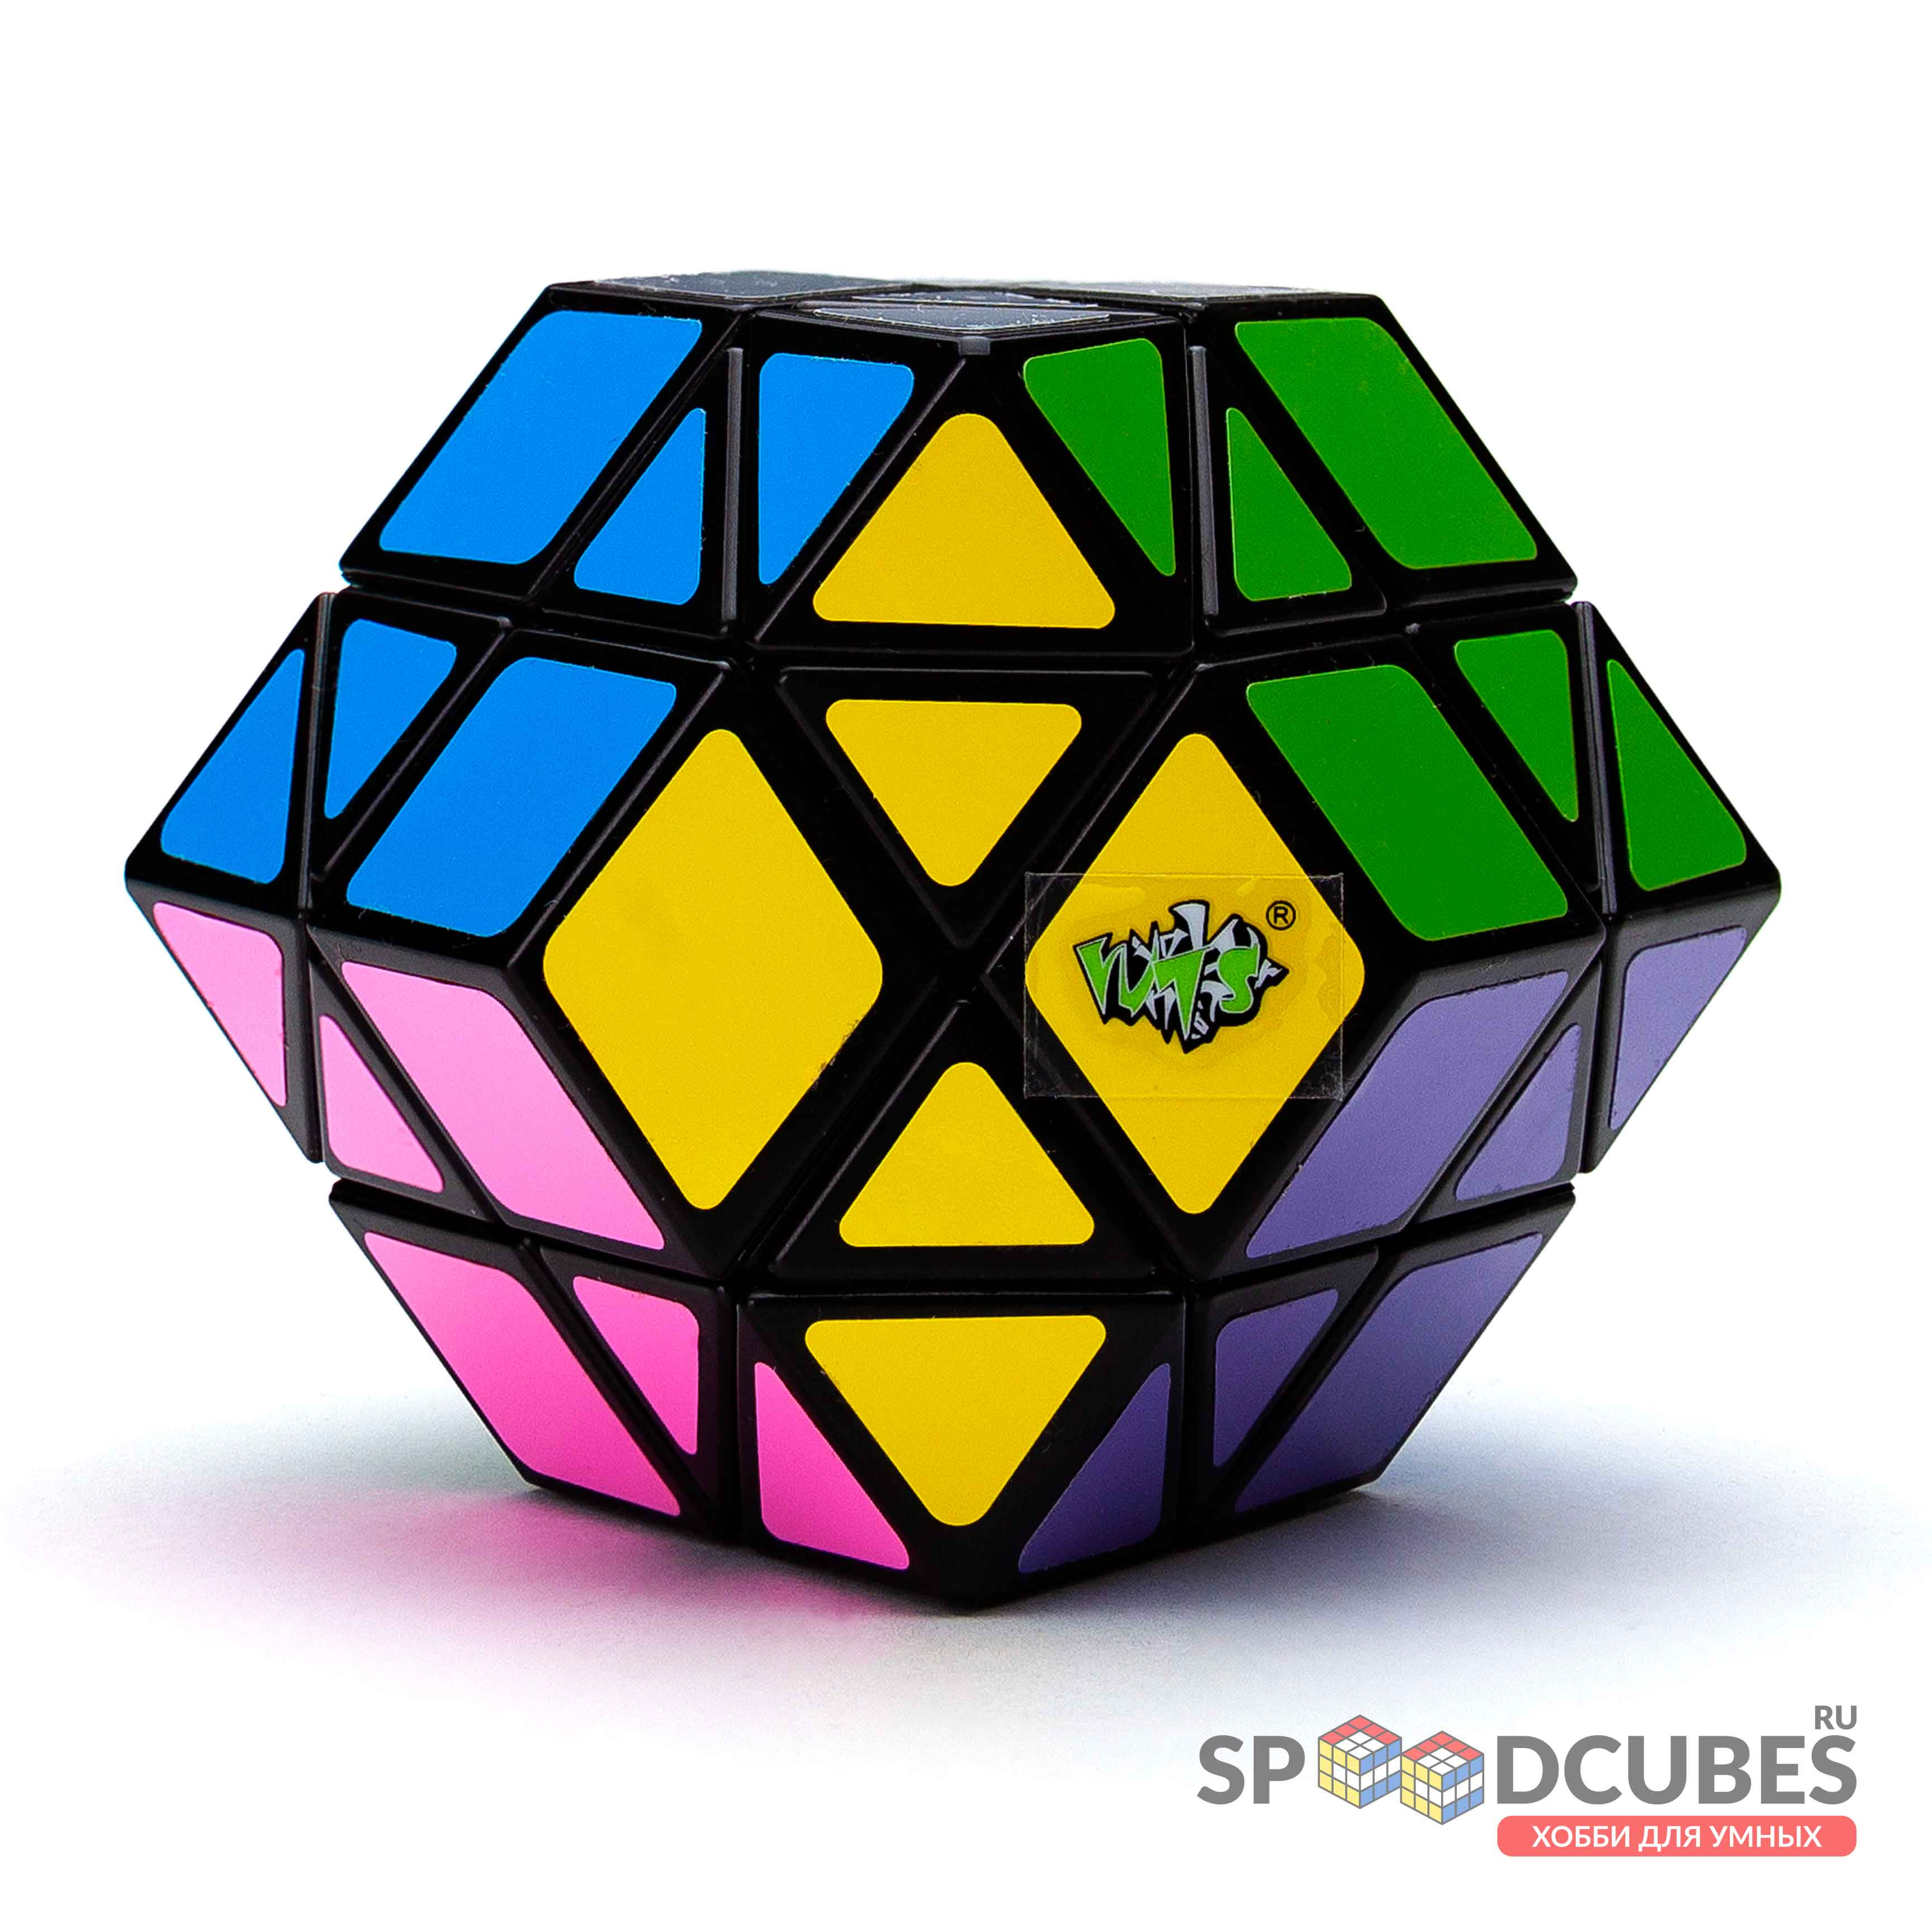 Lanlan 12-axis Dodecahedron Diamond